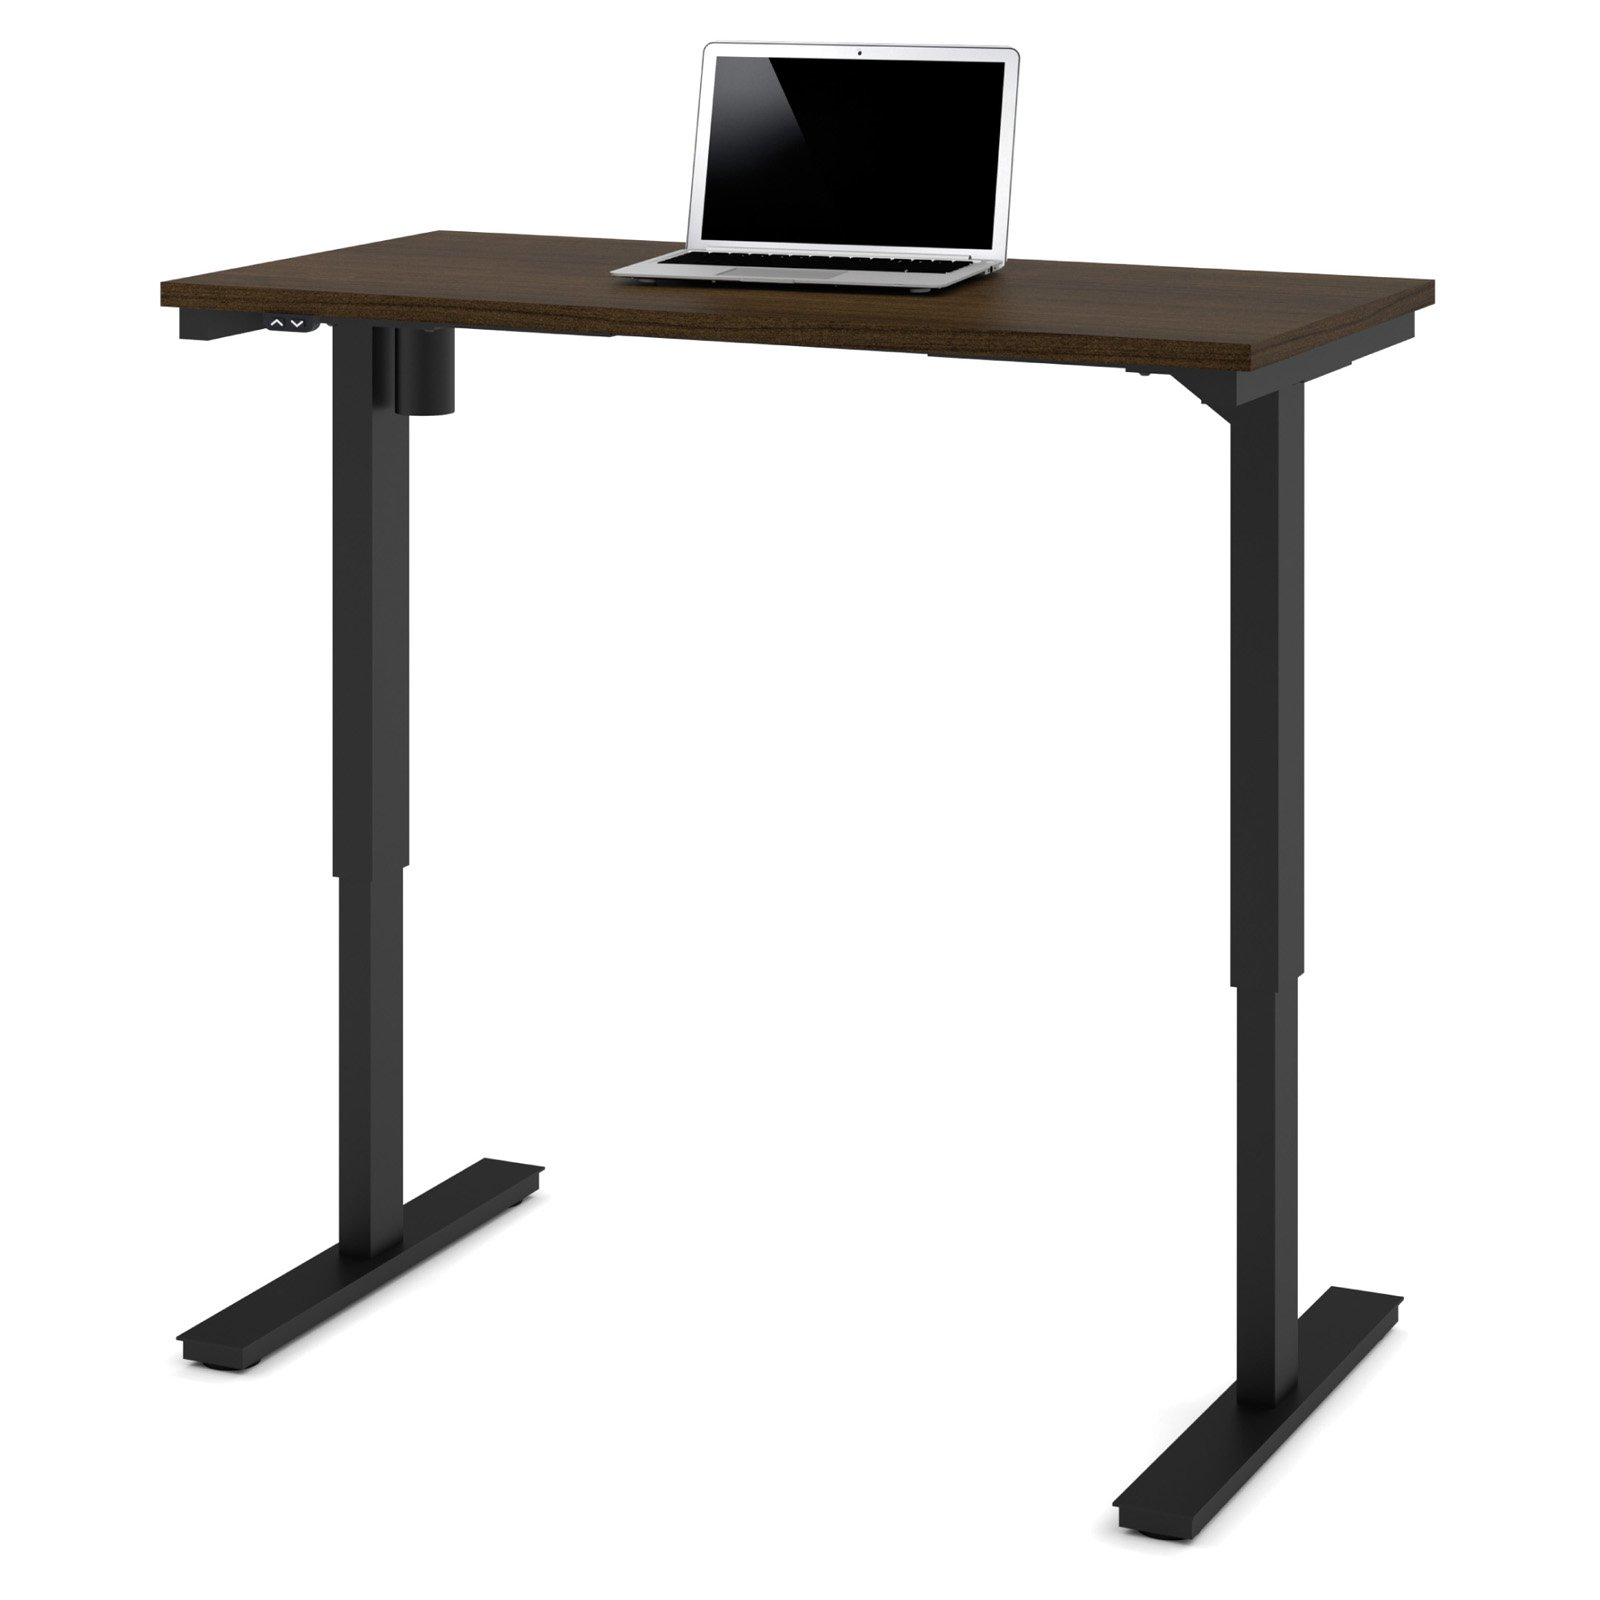 "Bestar 24"" x 48"" Electric Height Adjustable Table, Multiple Colors by Bestar"